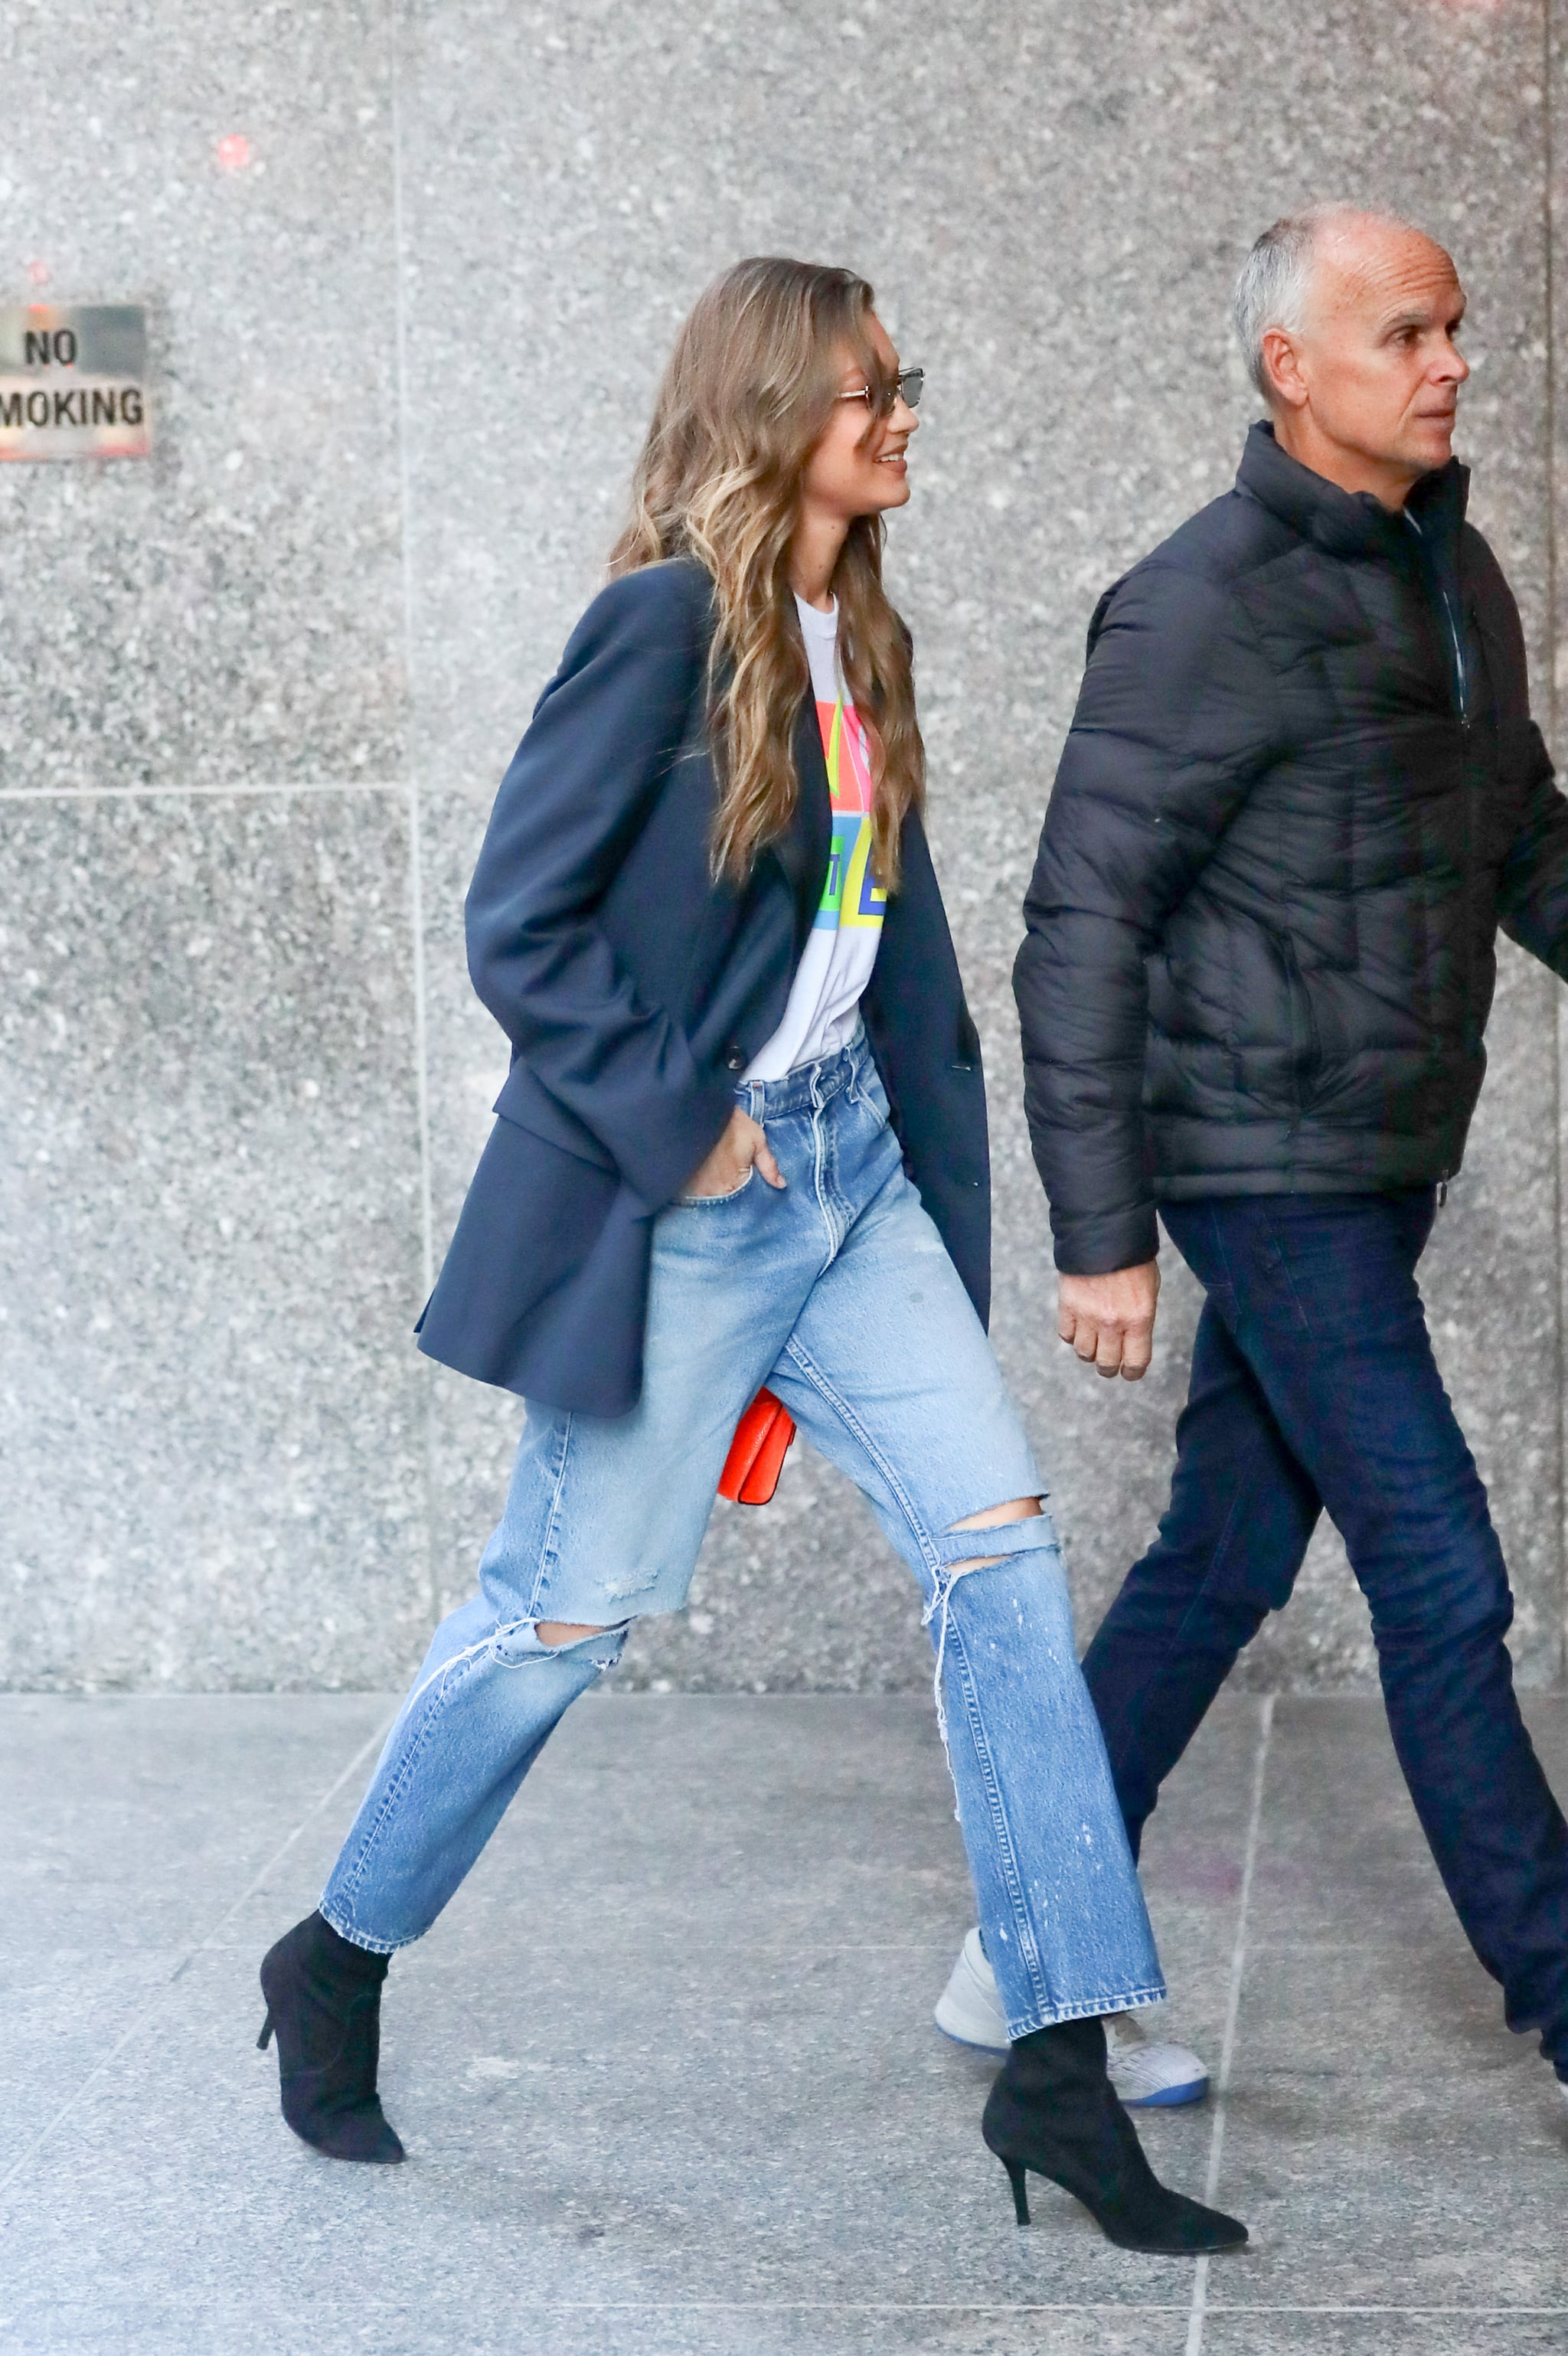 Style Your T,Shirt With Jeans, A Blazer, and Boots